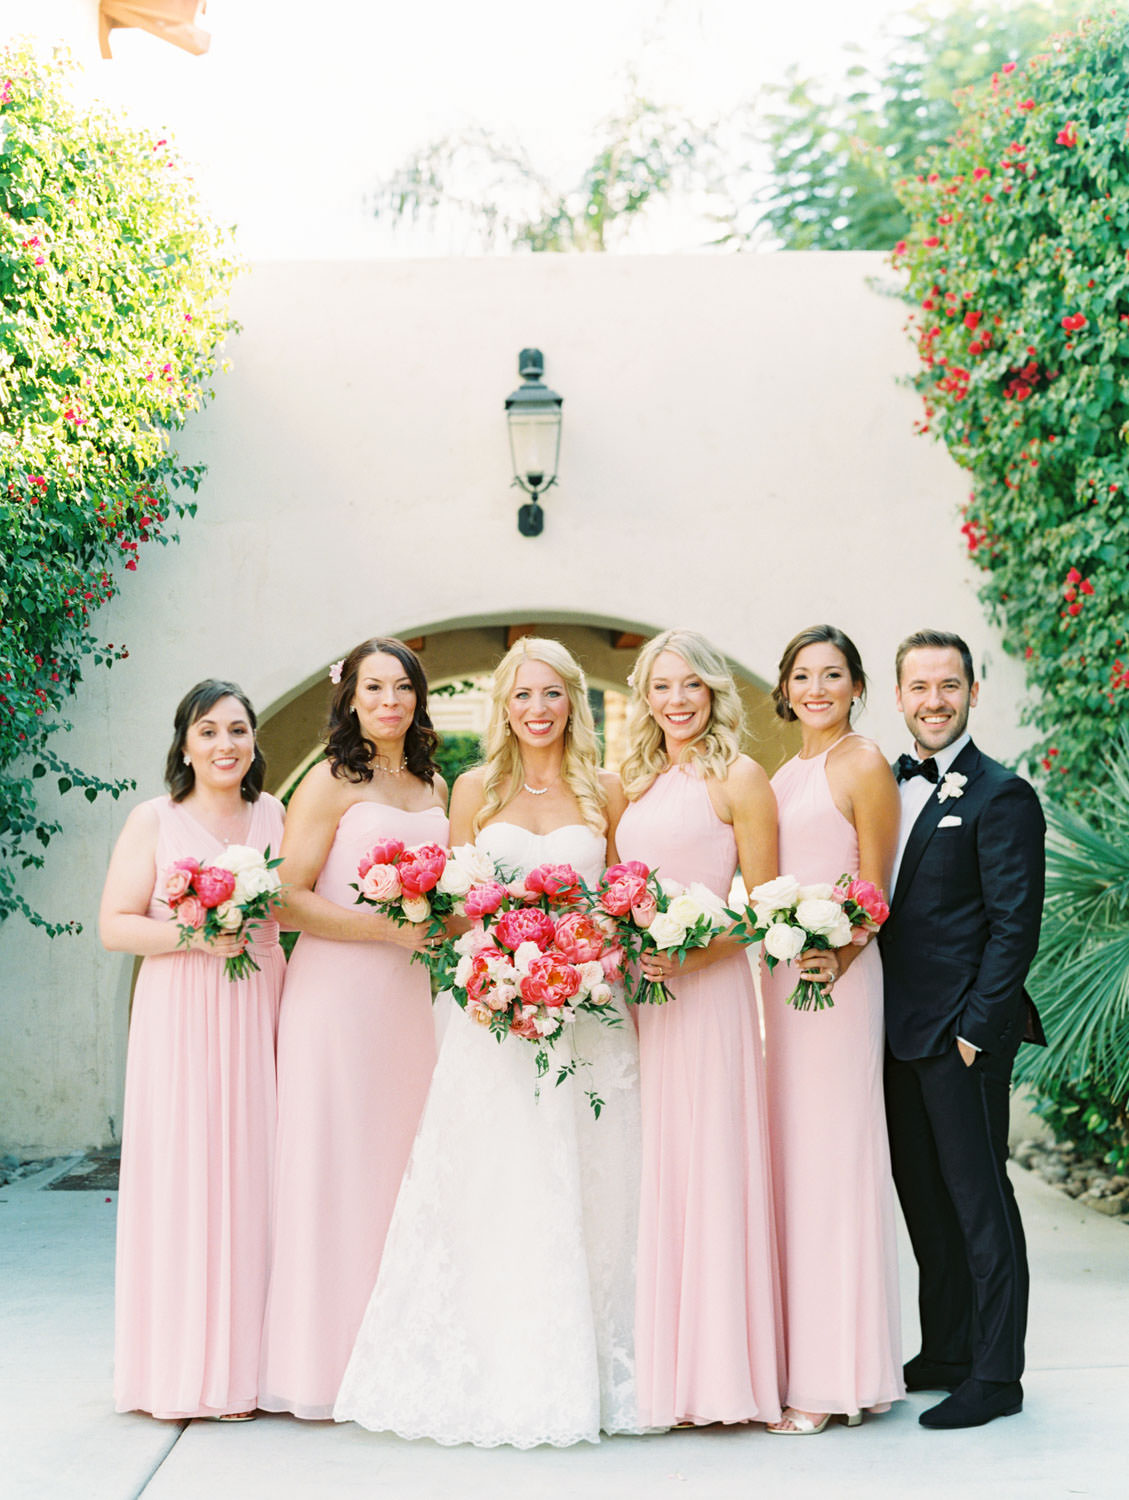 Bridal party portrait of bridesmaids in pink dresses and bridesman in black tux and bride wearing a lace Watters sweetheart gown with large bridal bouquet of pink tones with peonies and roses. Miramonte Resort wedding. Film photography by Cavin Elizabeth.